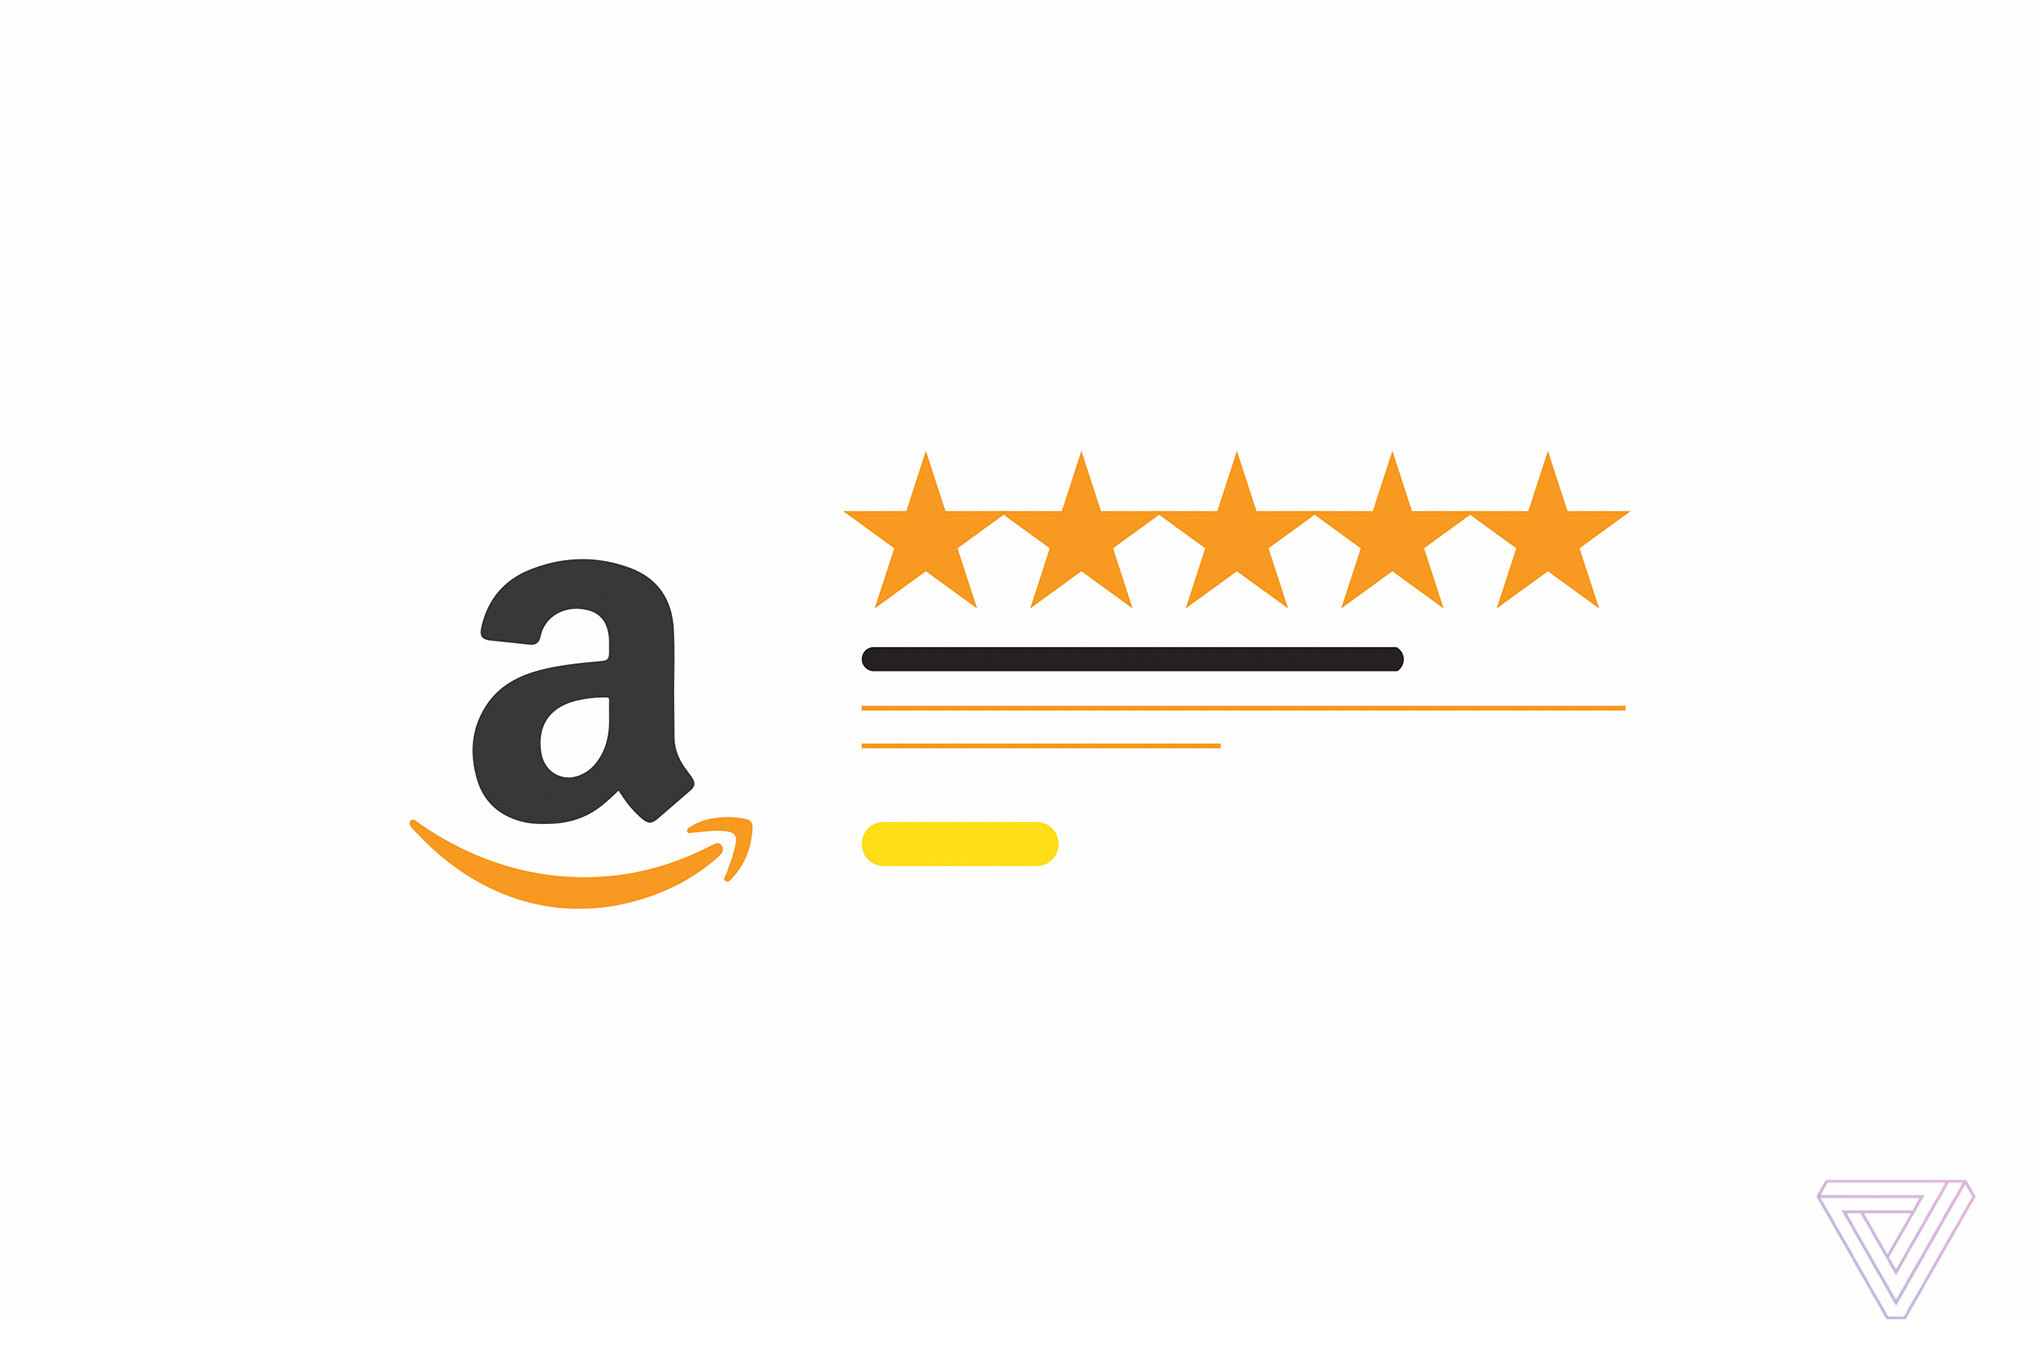 Ticker symbol for amazon gallery symbol and sign ideas kodak stock symbol image collections symbol and sign ideas kodak announces its own cryptocurrency and watches buycottarizona